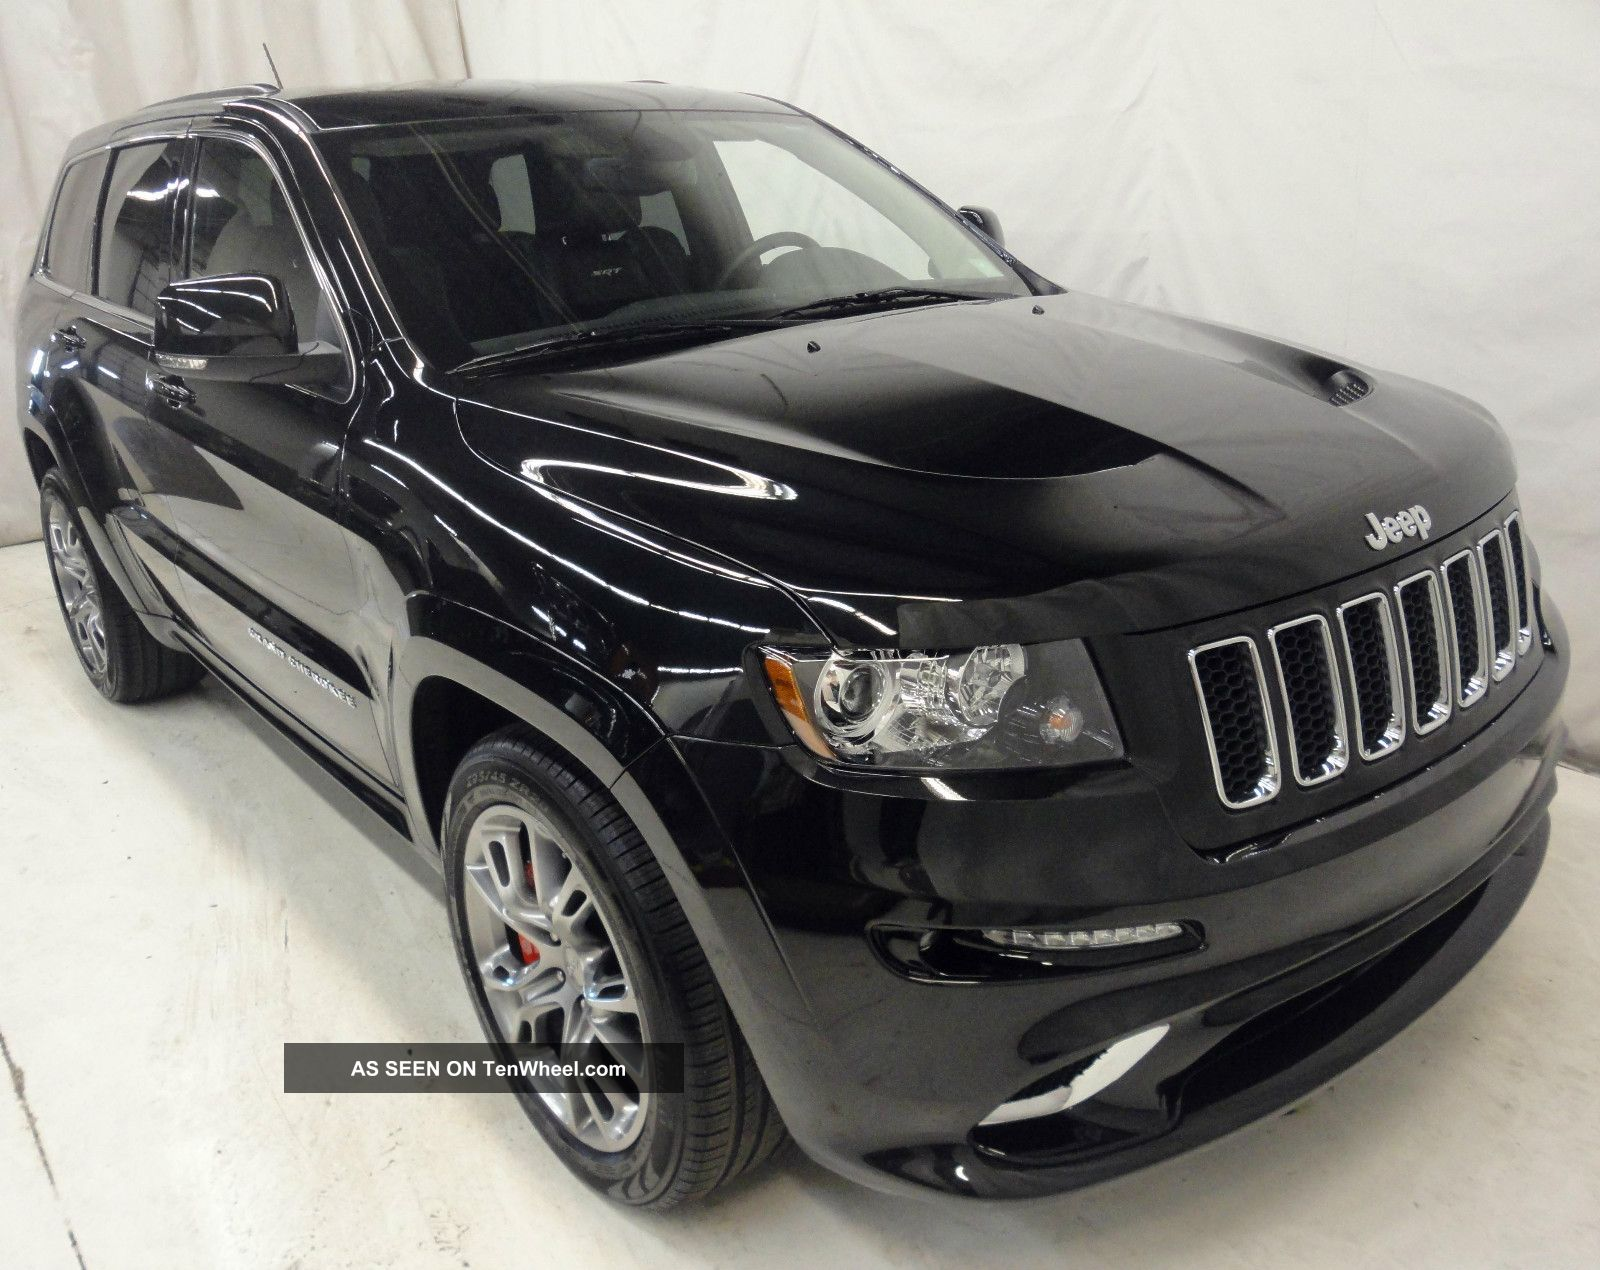 2012 Jeep Grand Cherokee Srt8 4x4 Cherokee photo